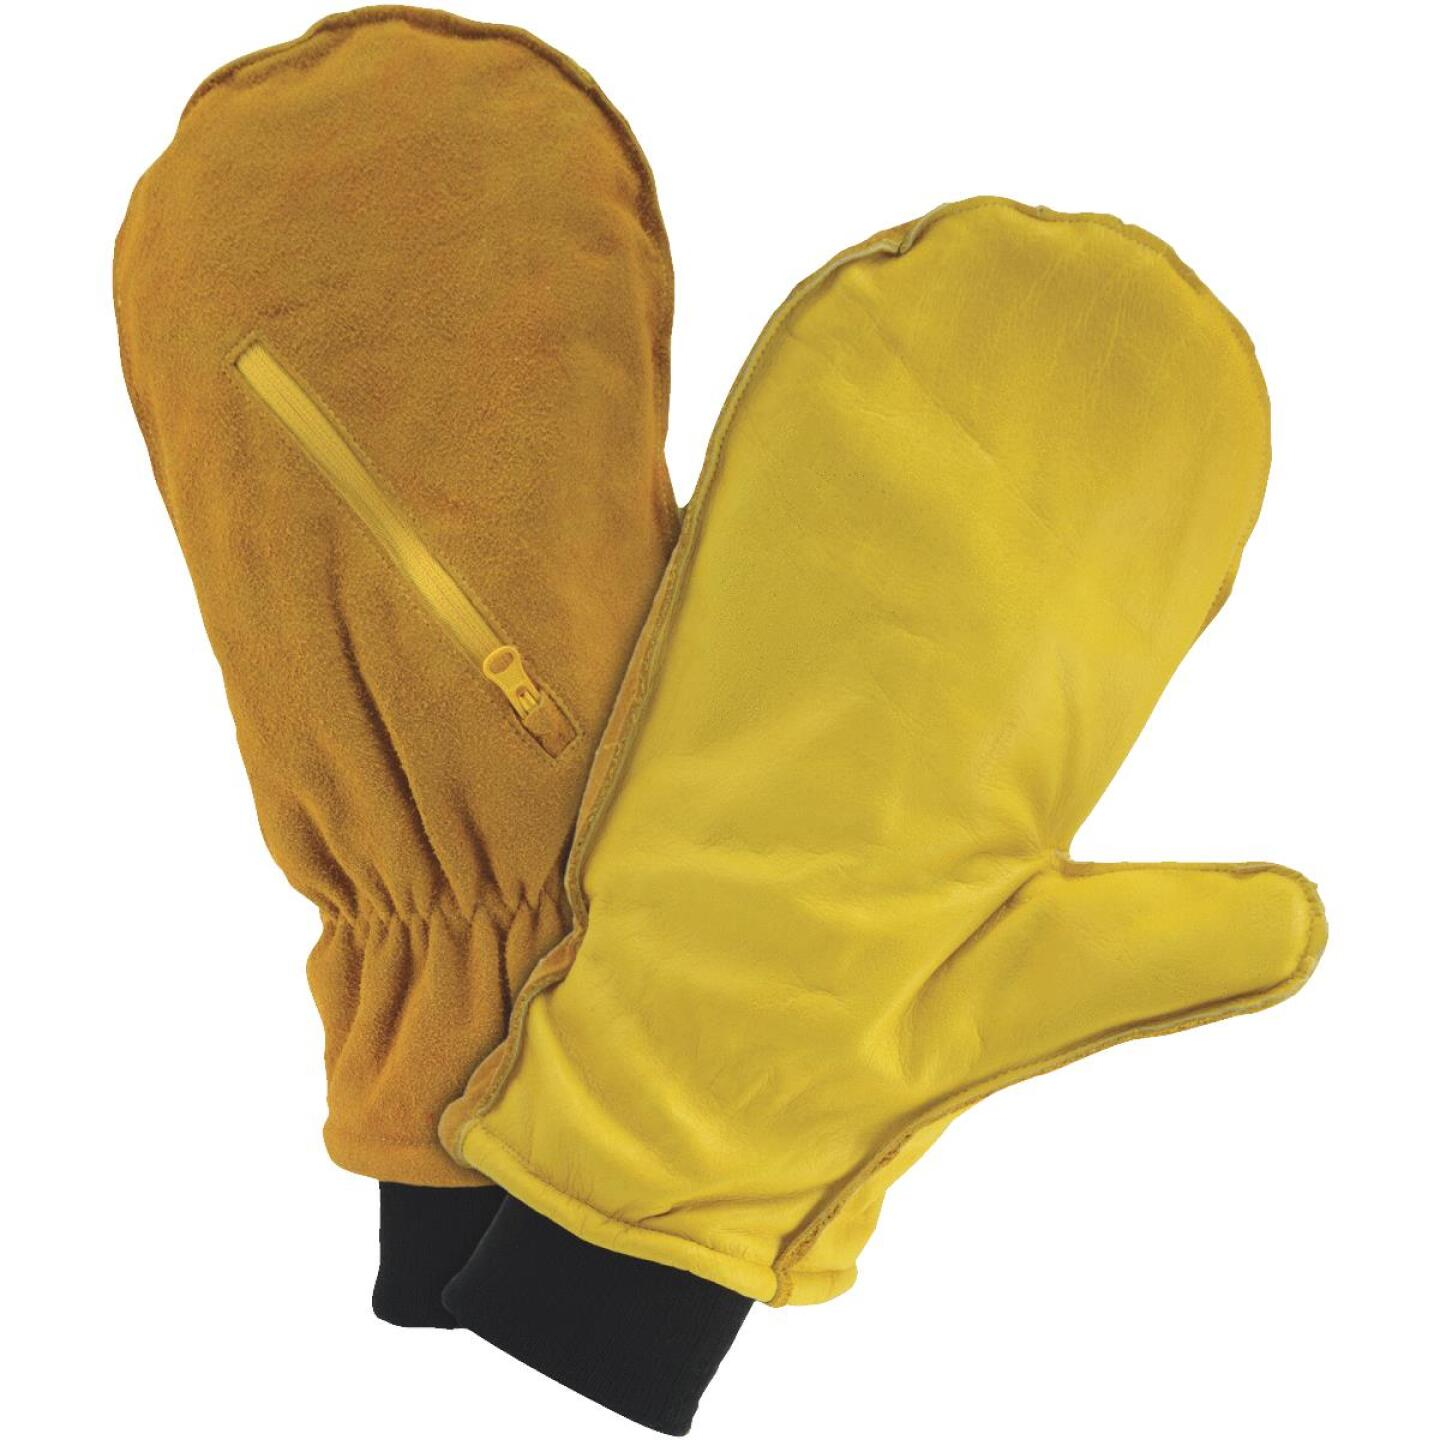 West Chester Men's XL Insulated Leather Mitten Winter Glove Image 1